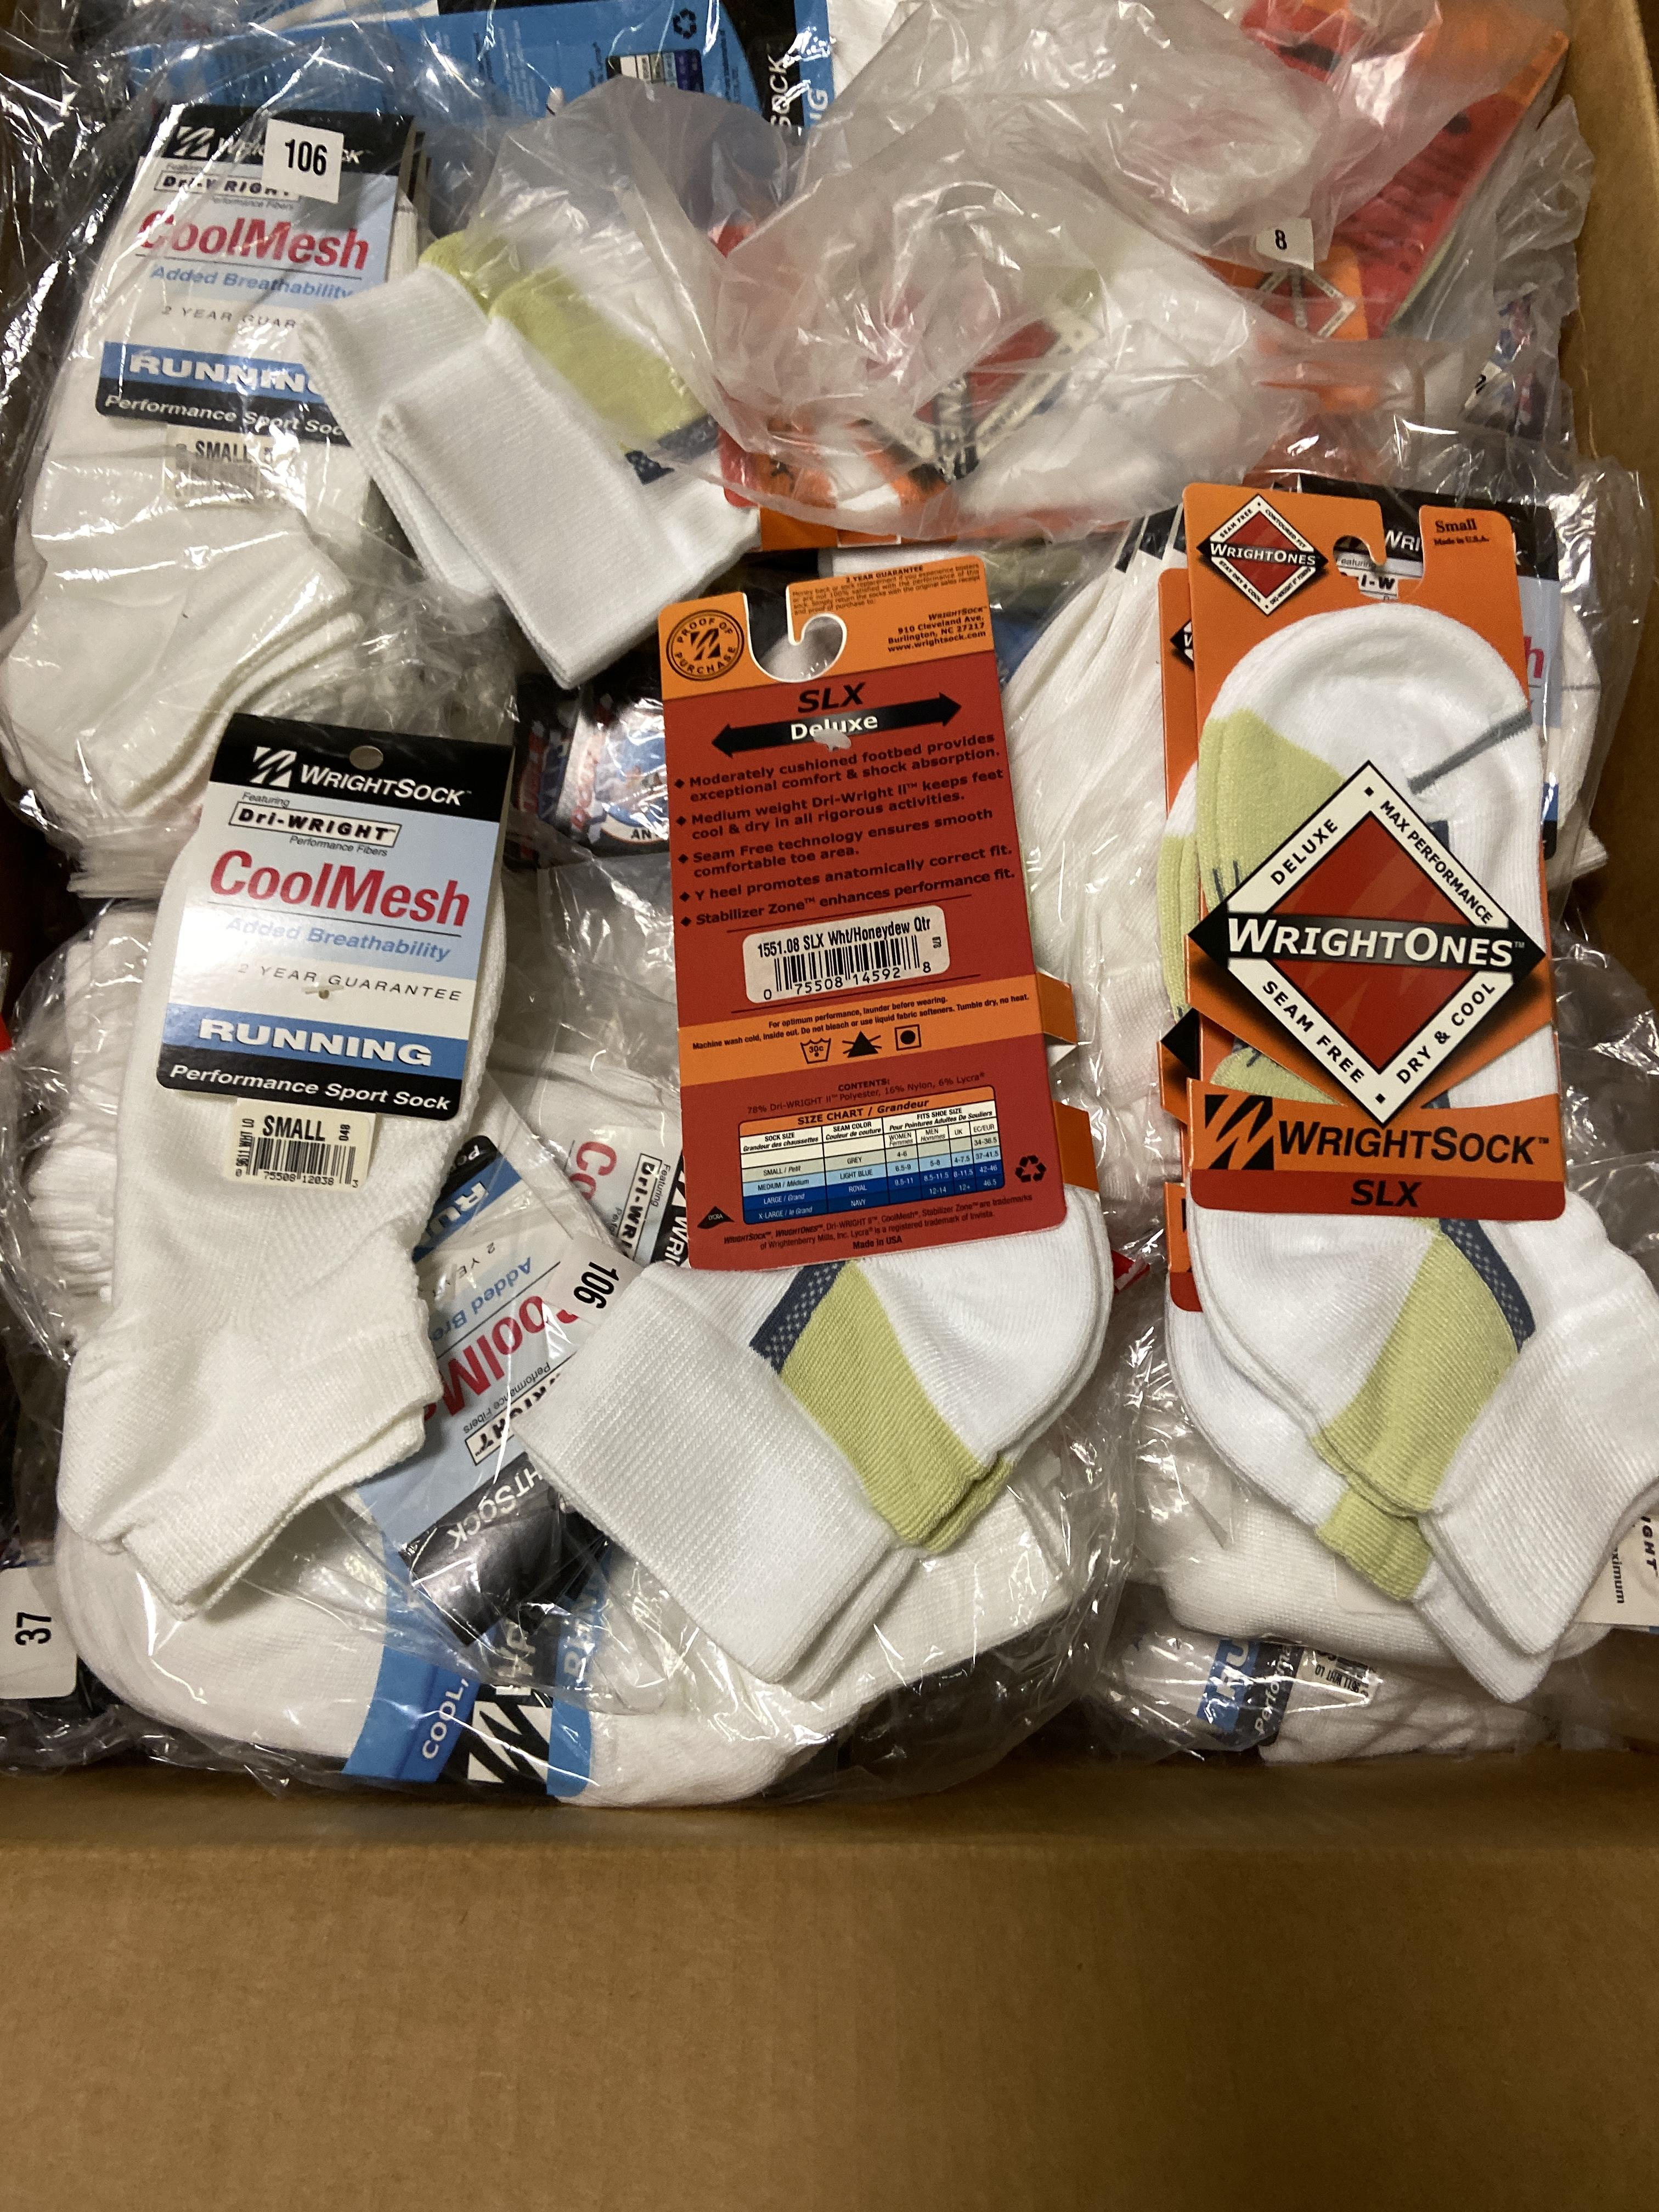 500+ packs of New Socks, Wrightsocks Various Styles, Various Colors and Styles - Image 4 of 6